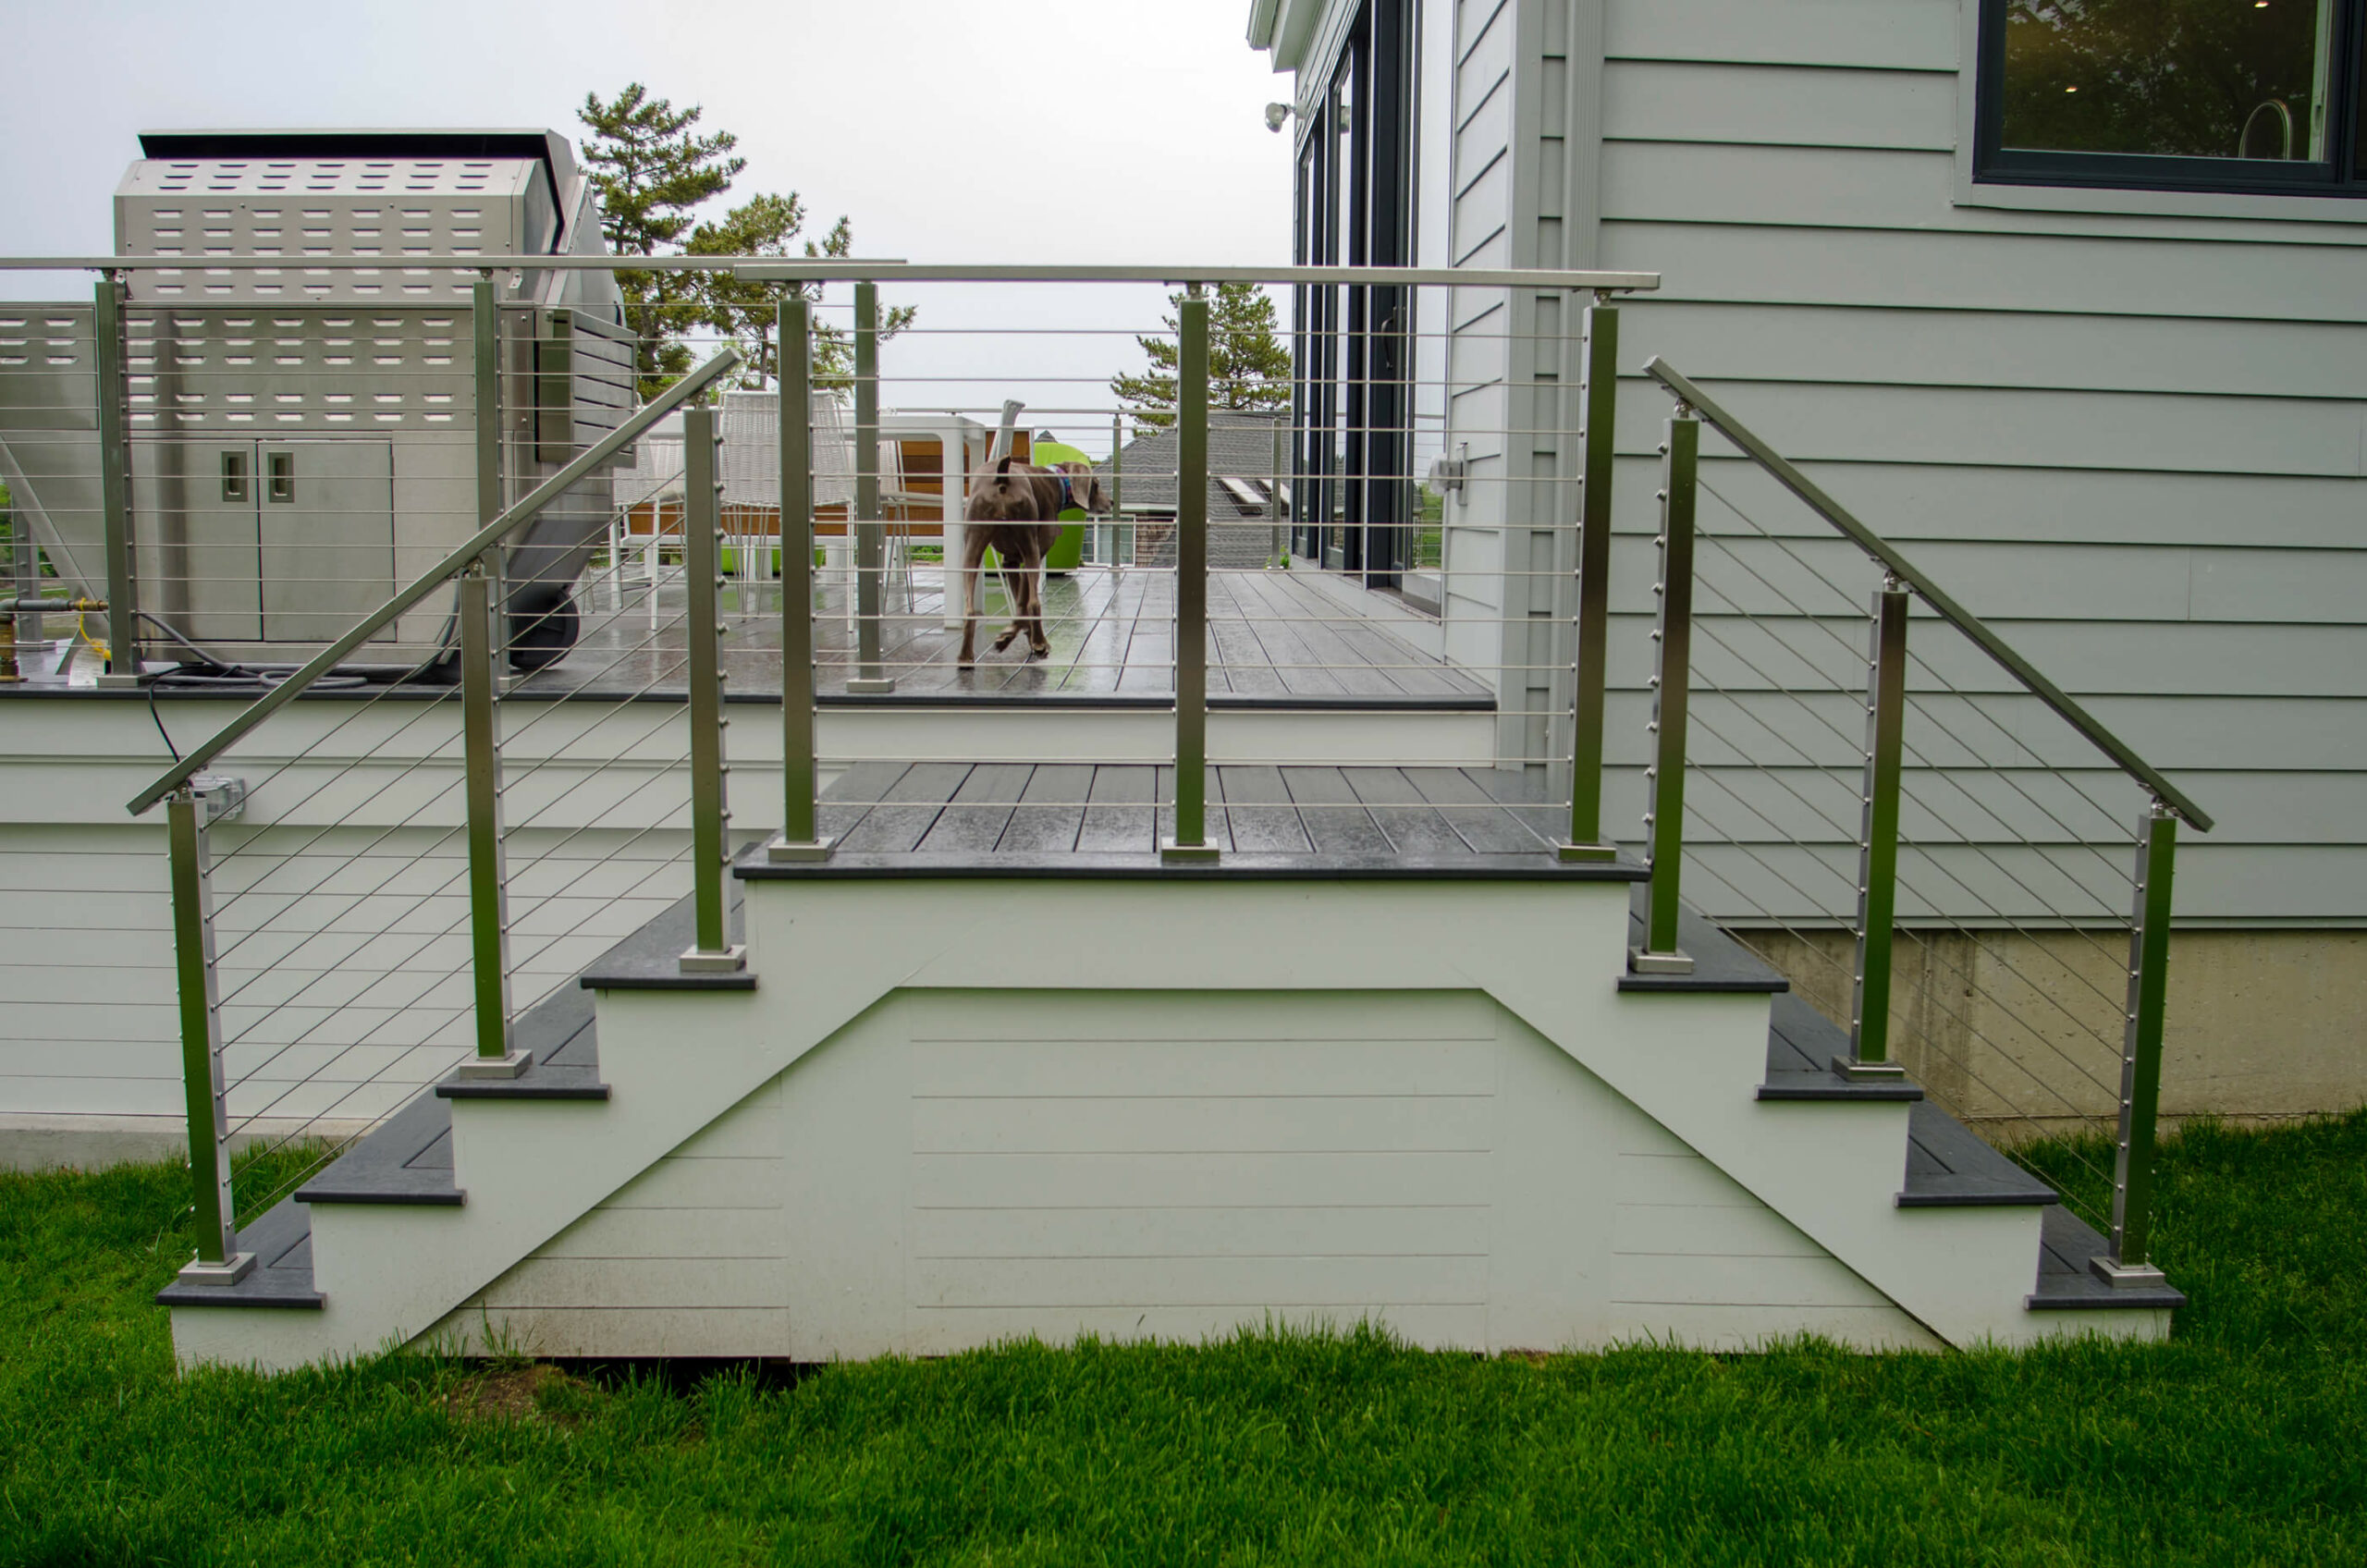 Photo of a cable rail stair